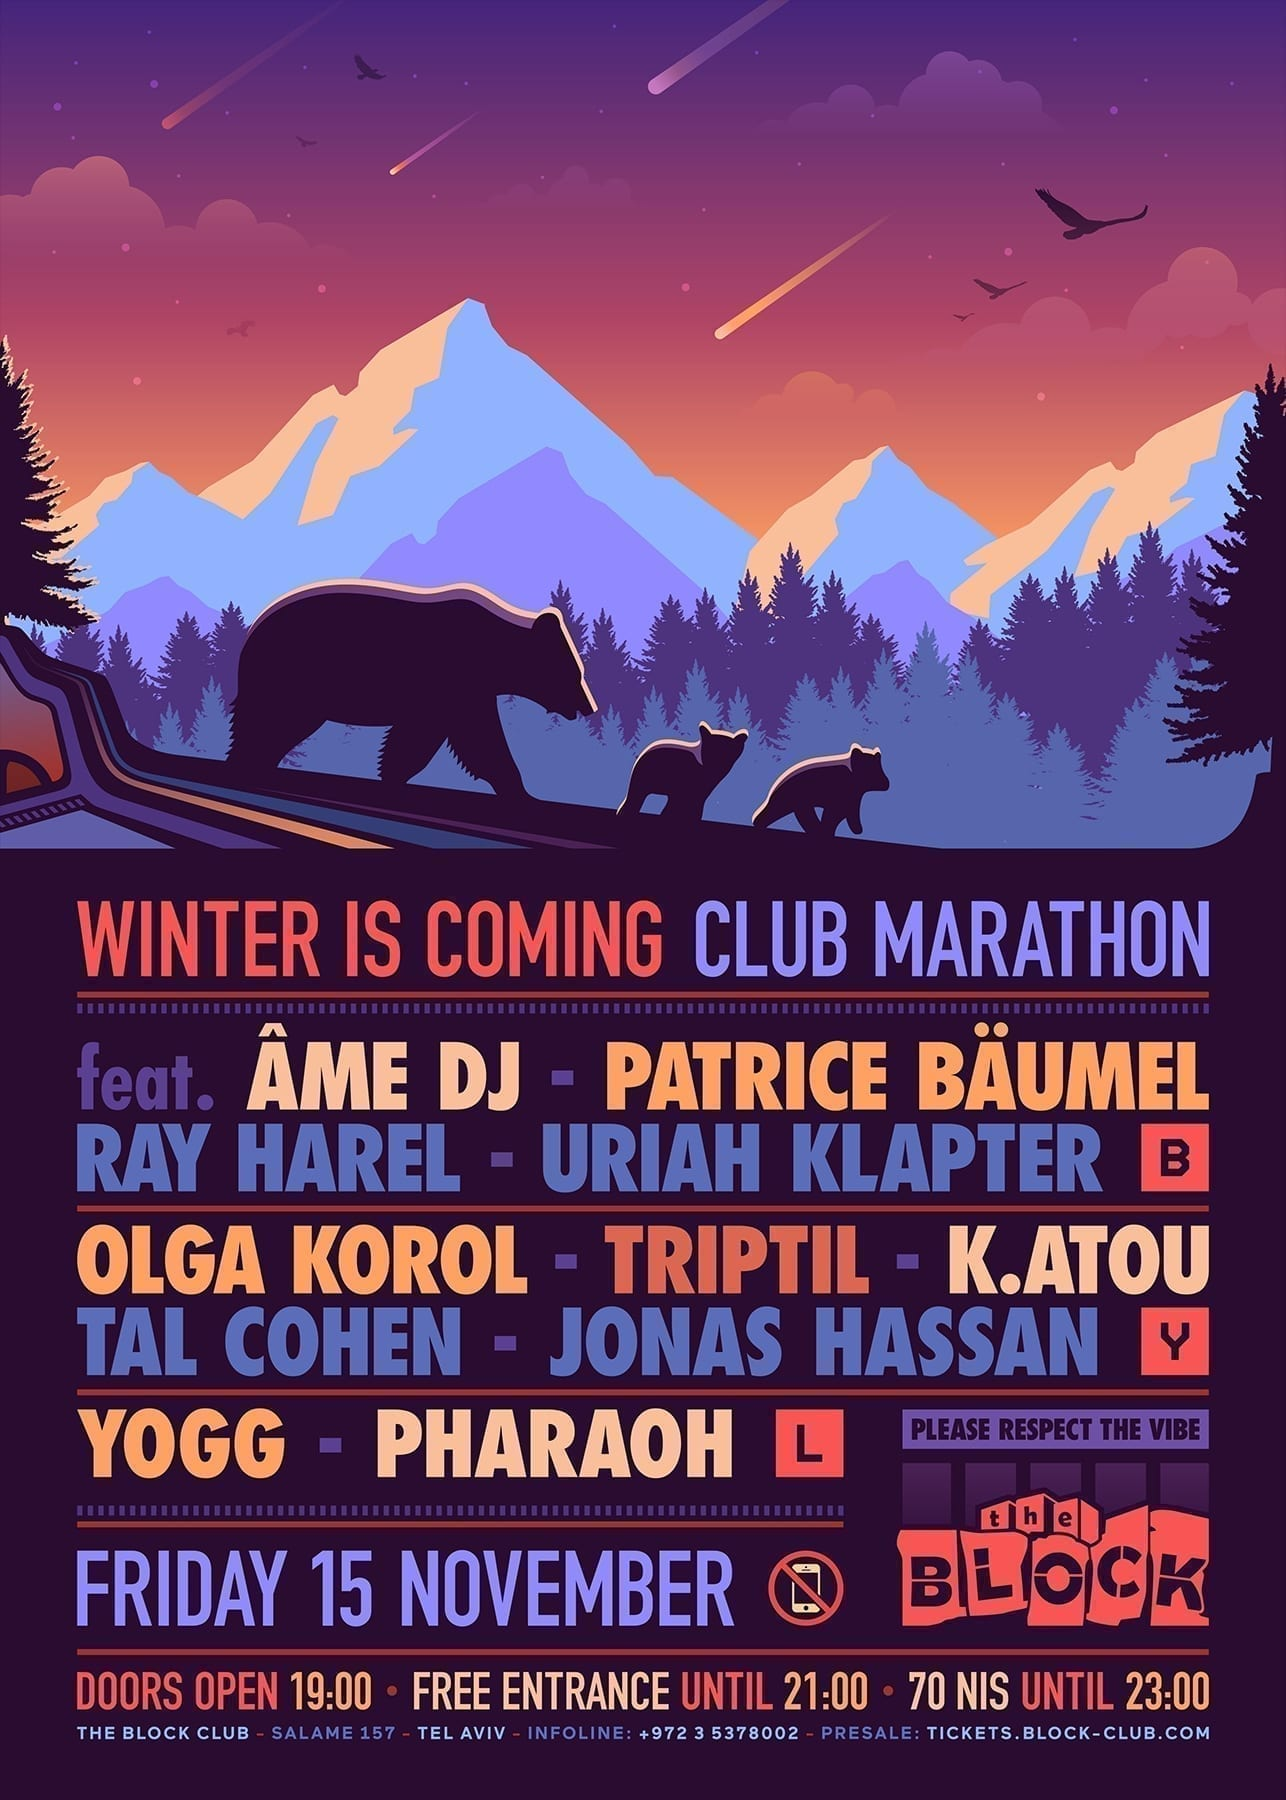 Winter Is Coming Club Marathon at The Block Feat. AME DJ, Patrice Bäumel, K.atou, Triptil, Olga Korol